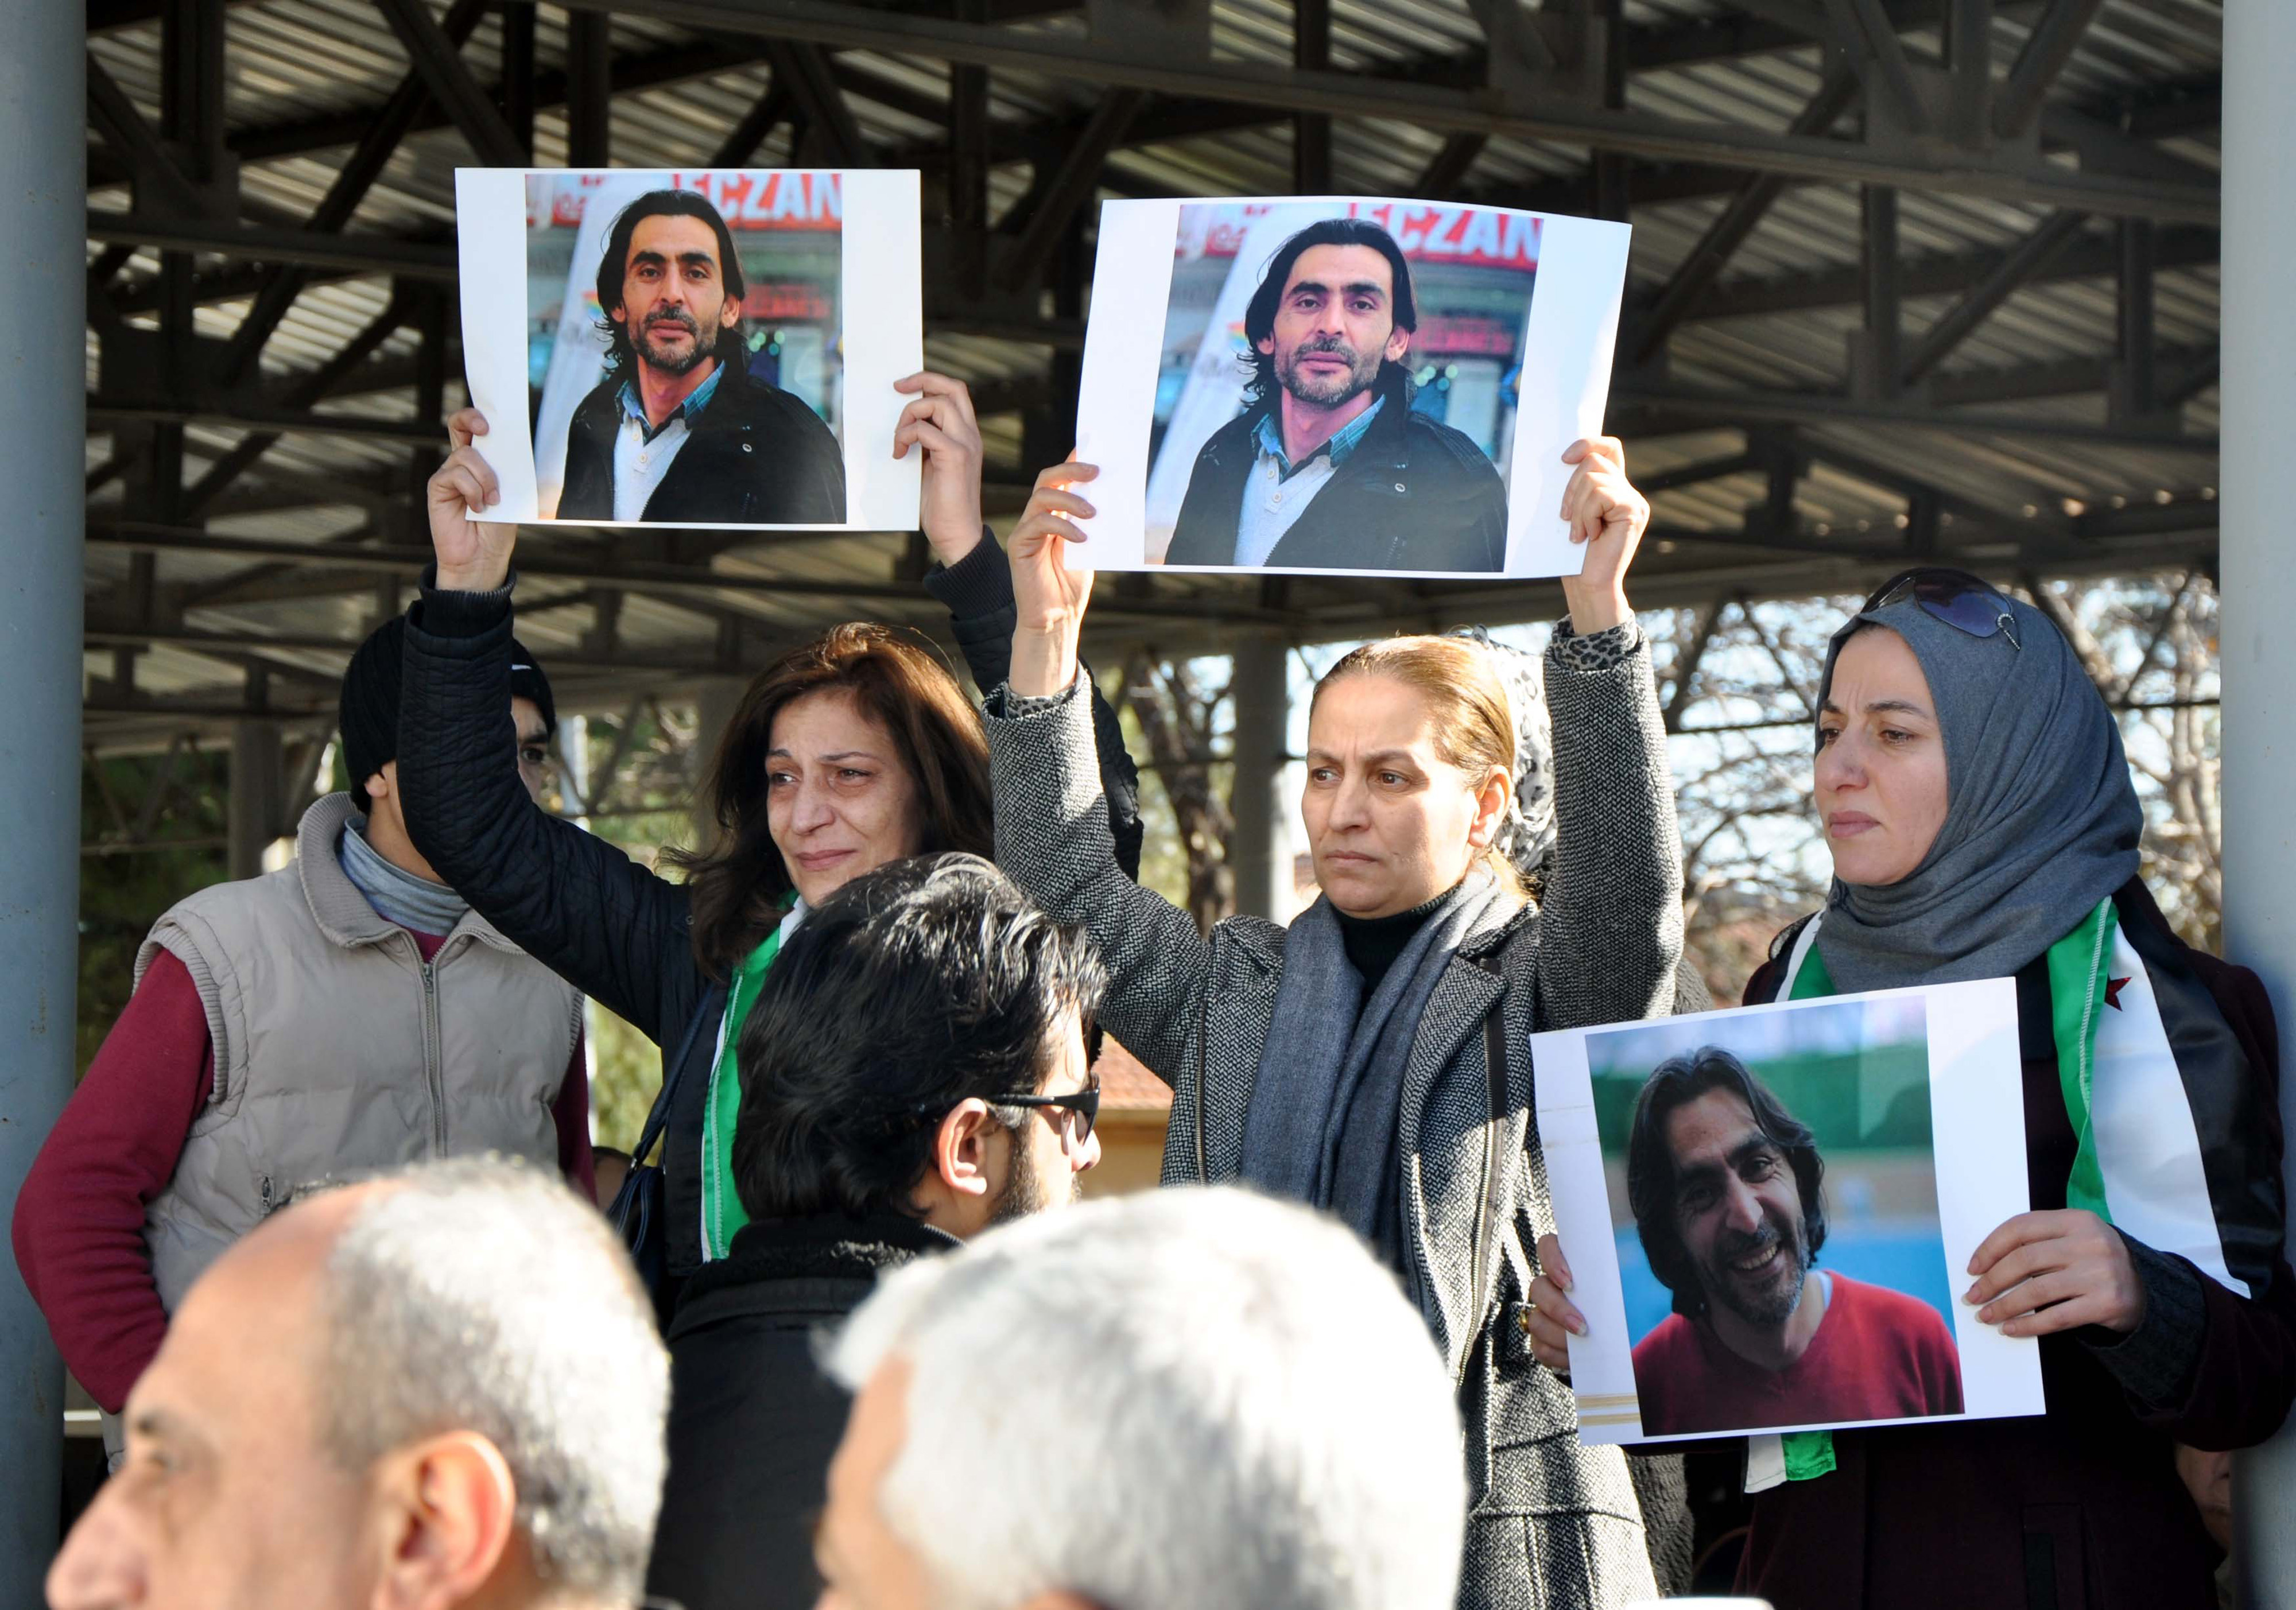 Women hold pictures of film maker Naji Jerf, who was killed on December 27, during his funeral in Gaziantep on Dec. 28, 2015.